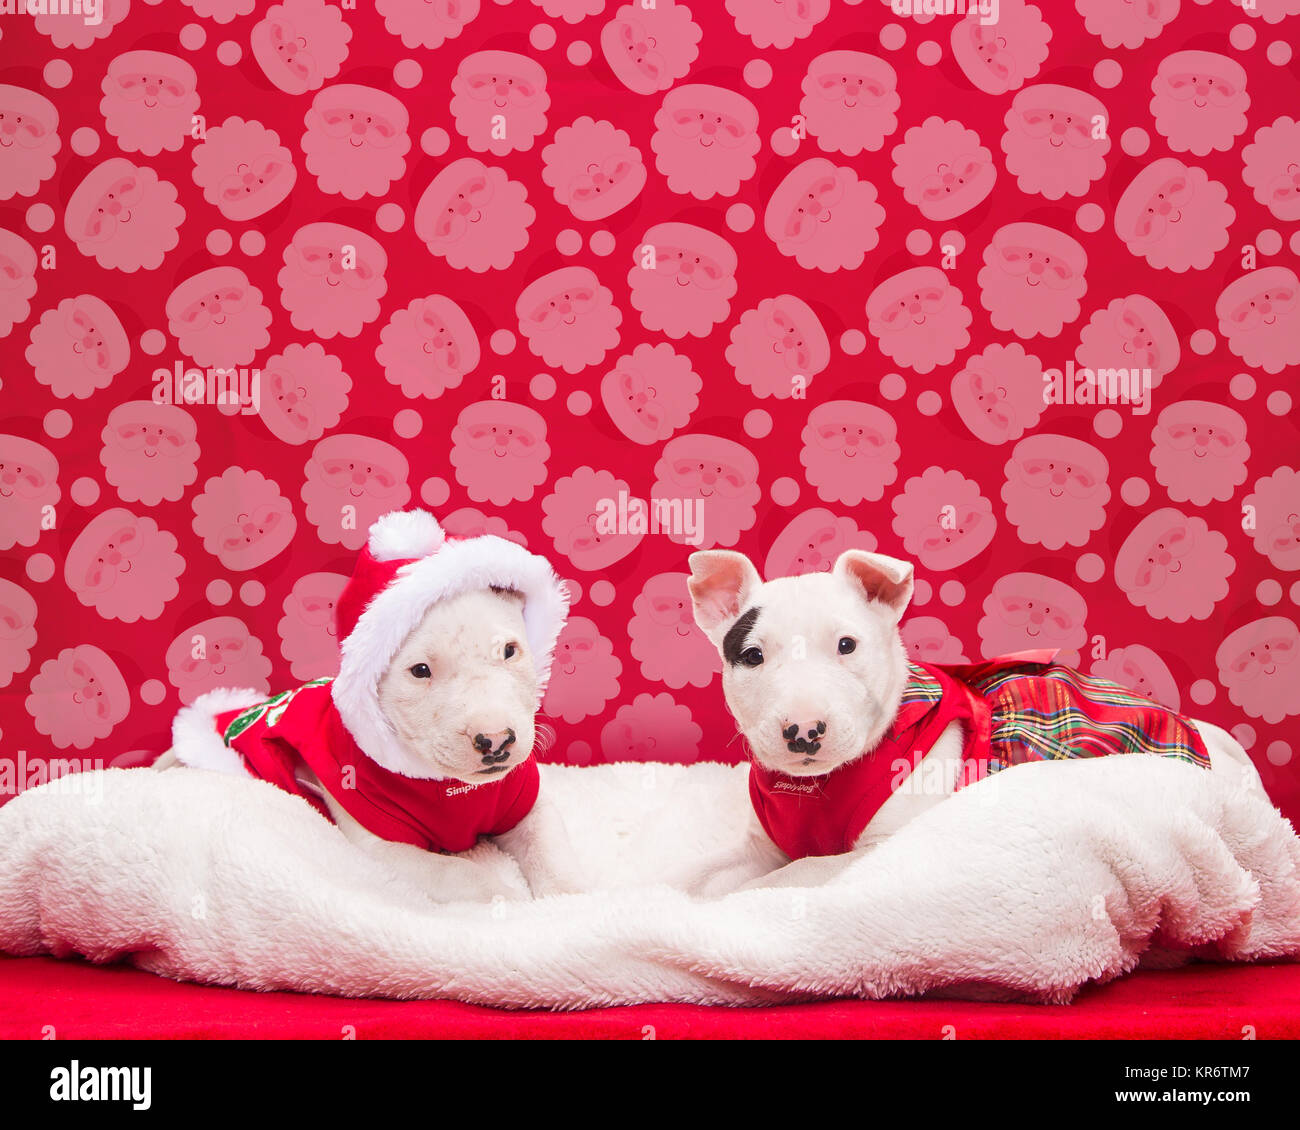 Two bull terrier puppies posed for their Christmas photo - Stock Image